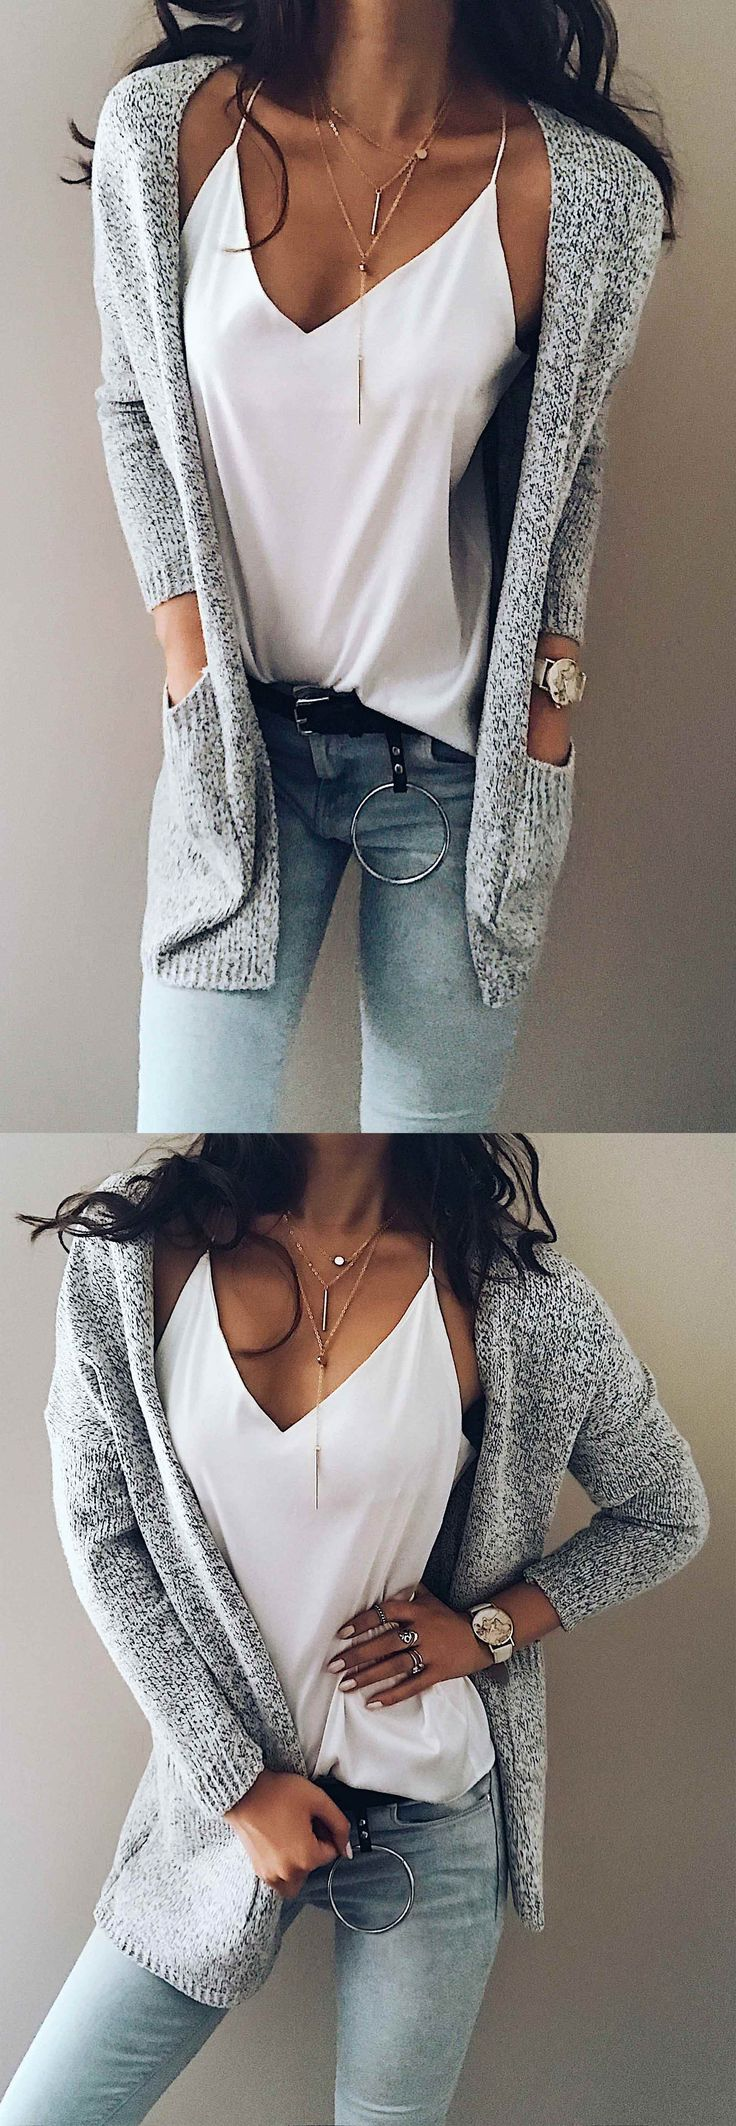 Best 25  Women's cardigans ideas on Pinterest | Winter cardigan ...